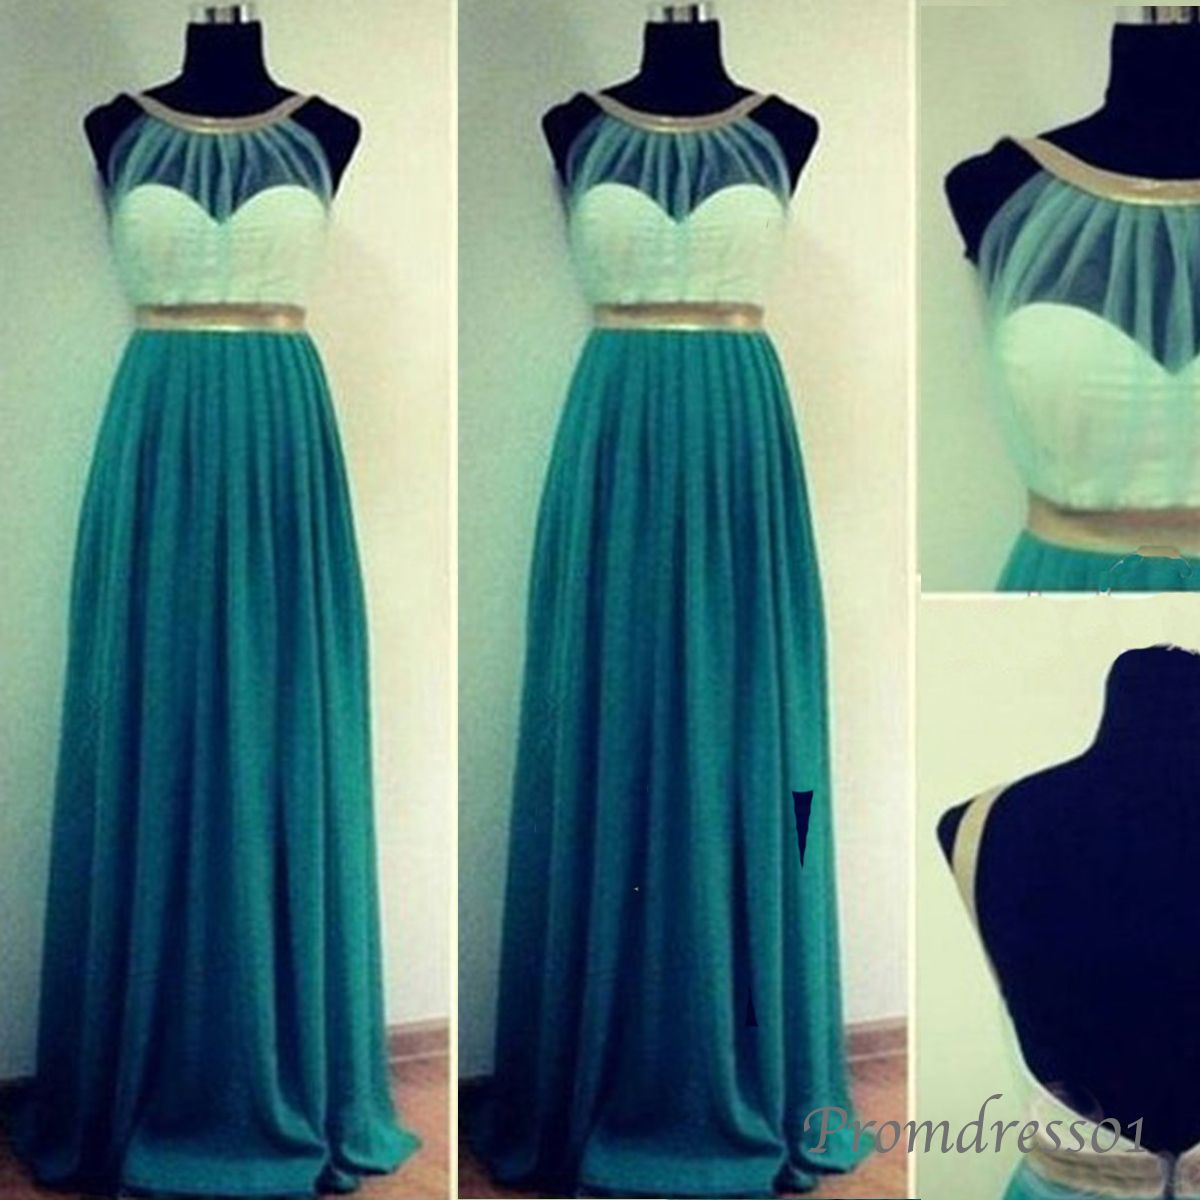 This reminds me of something Jasmine would wear | Disney-Inspired ...